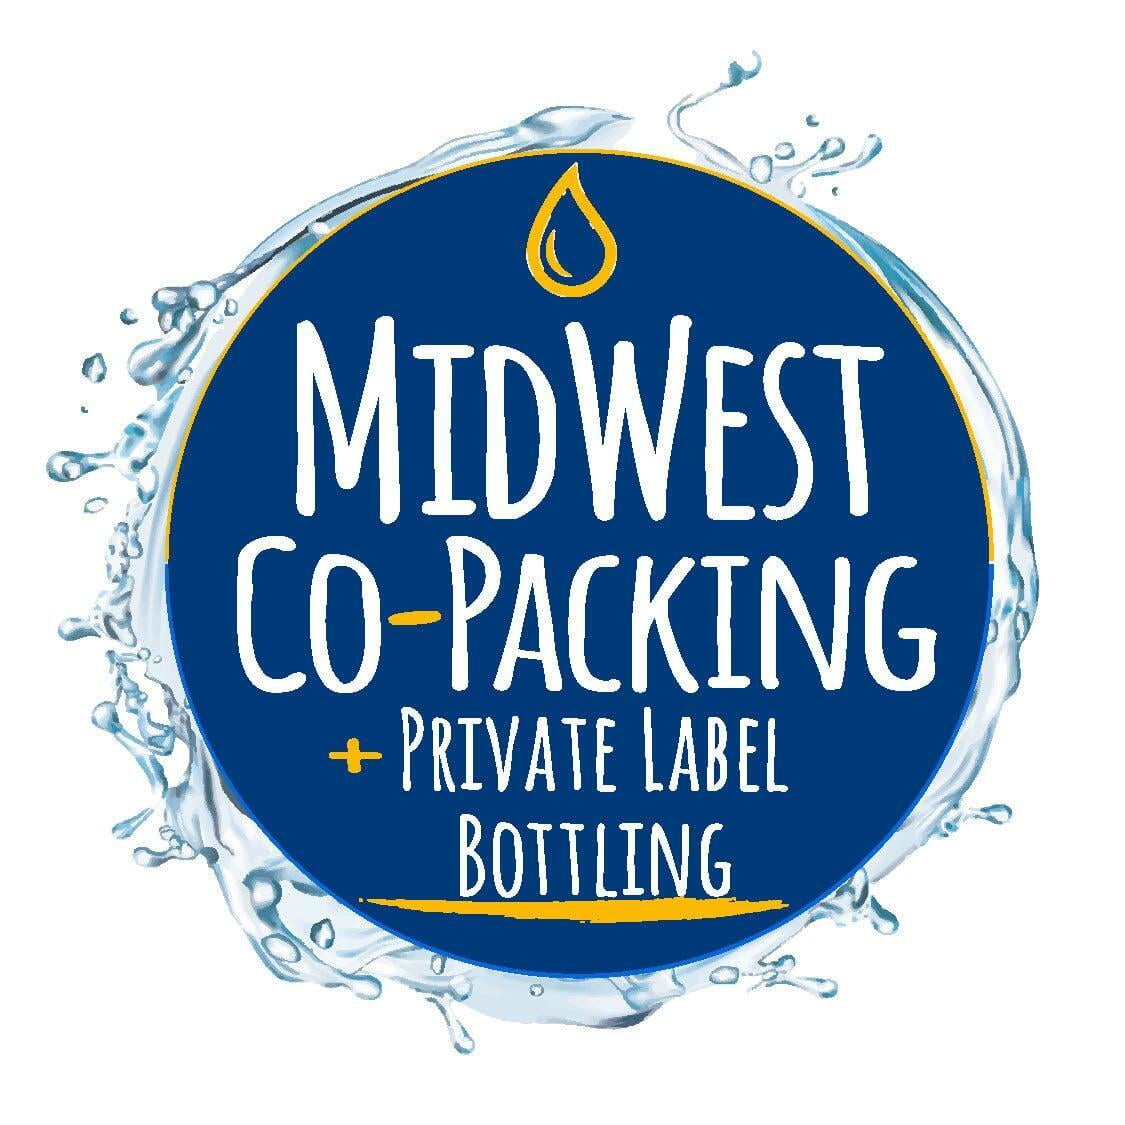 midwestcopacking.com